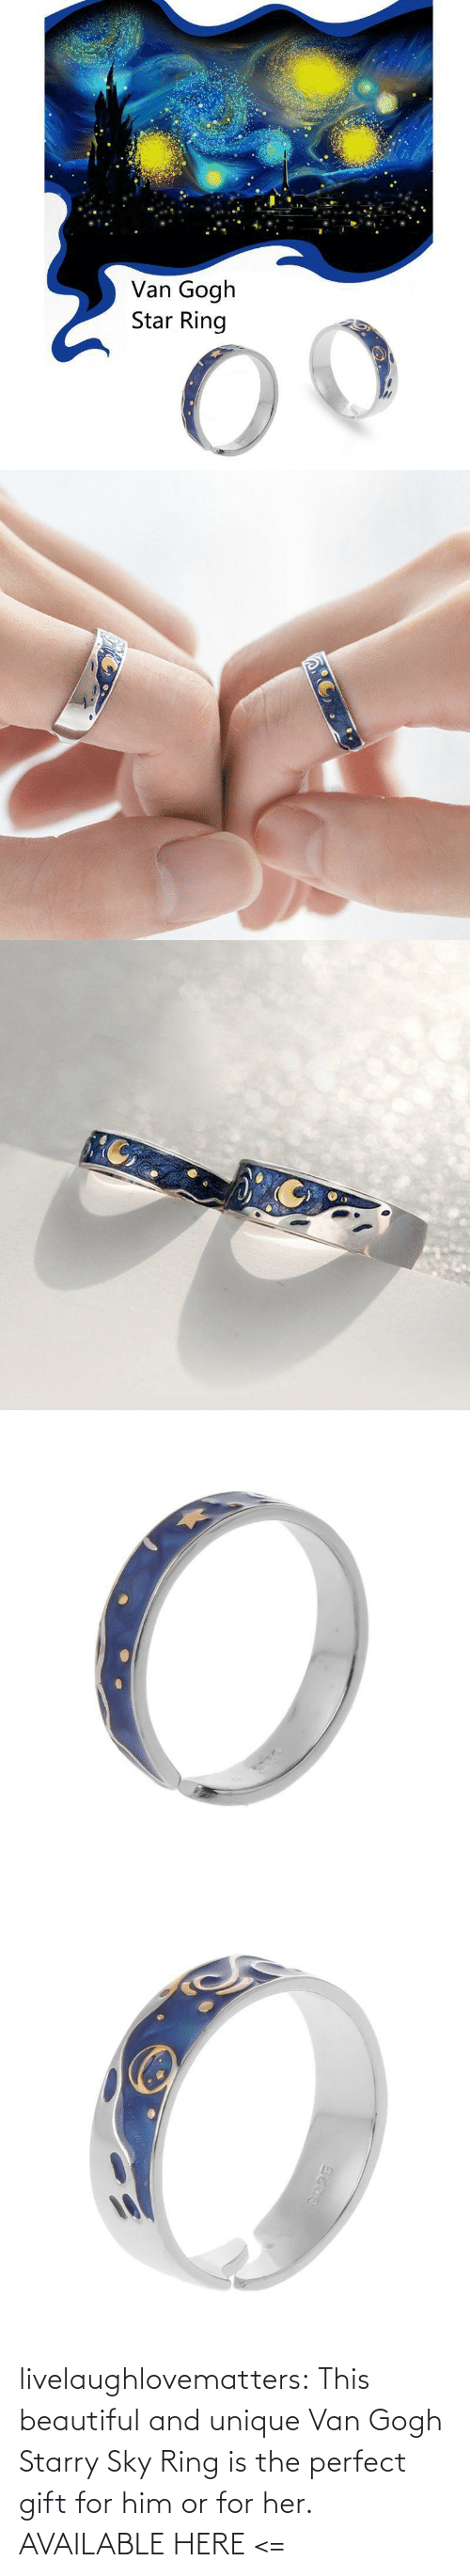 ring: livelaughlovematters:  This beautiful and unique Van Gogh Starry Sky Ring is the perfect gift for him or for her. AVAILABLE HERE <=